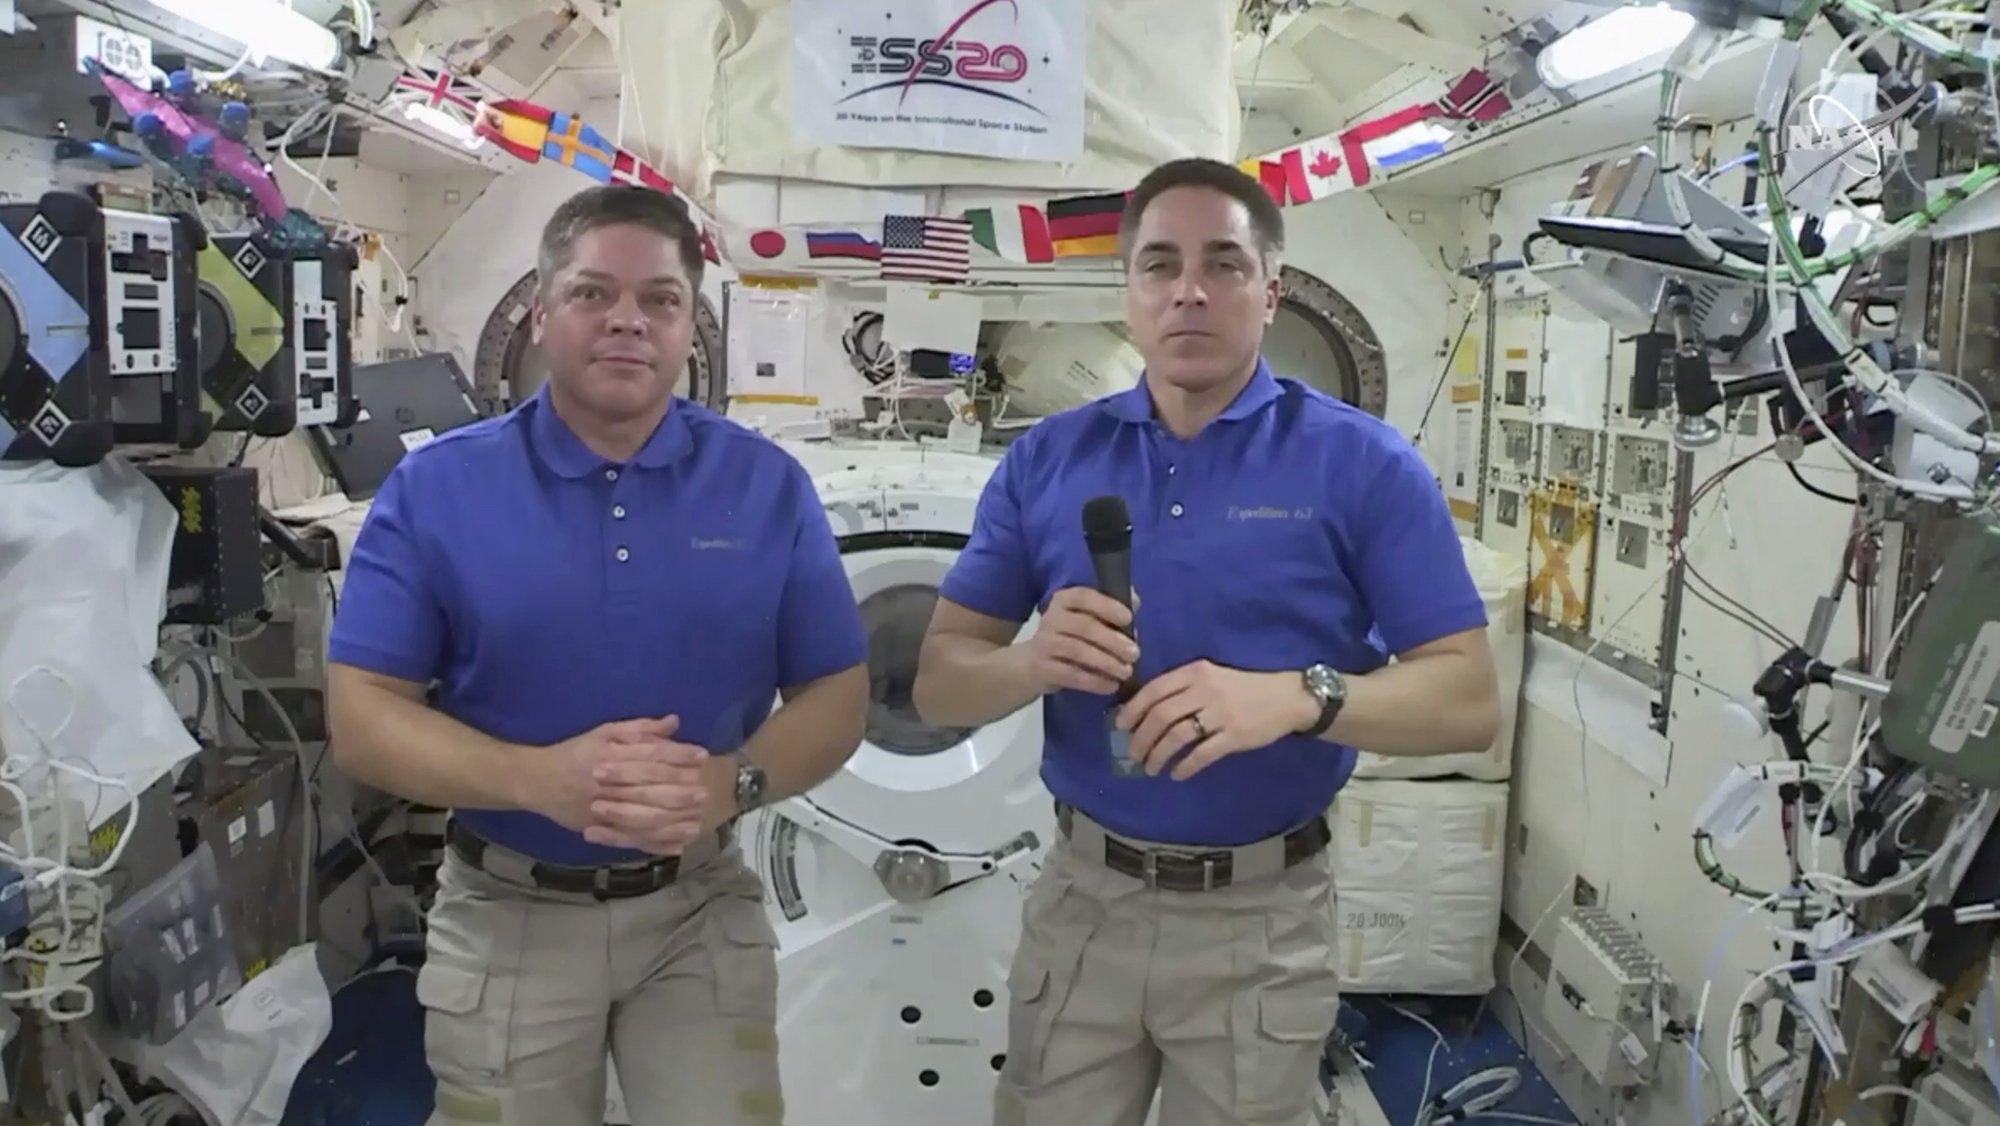 Astronaut says losing mirror on spacewalk was 'real bummer' - The Associated Press thumbnail